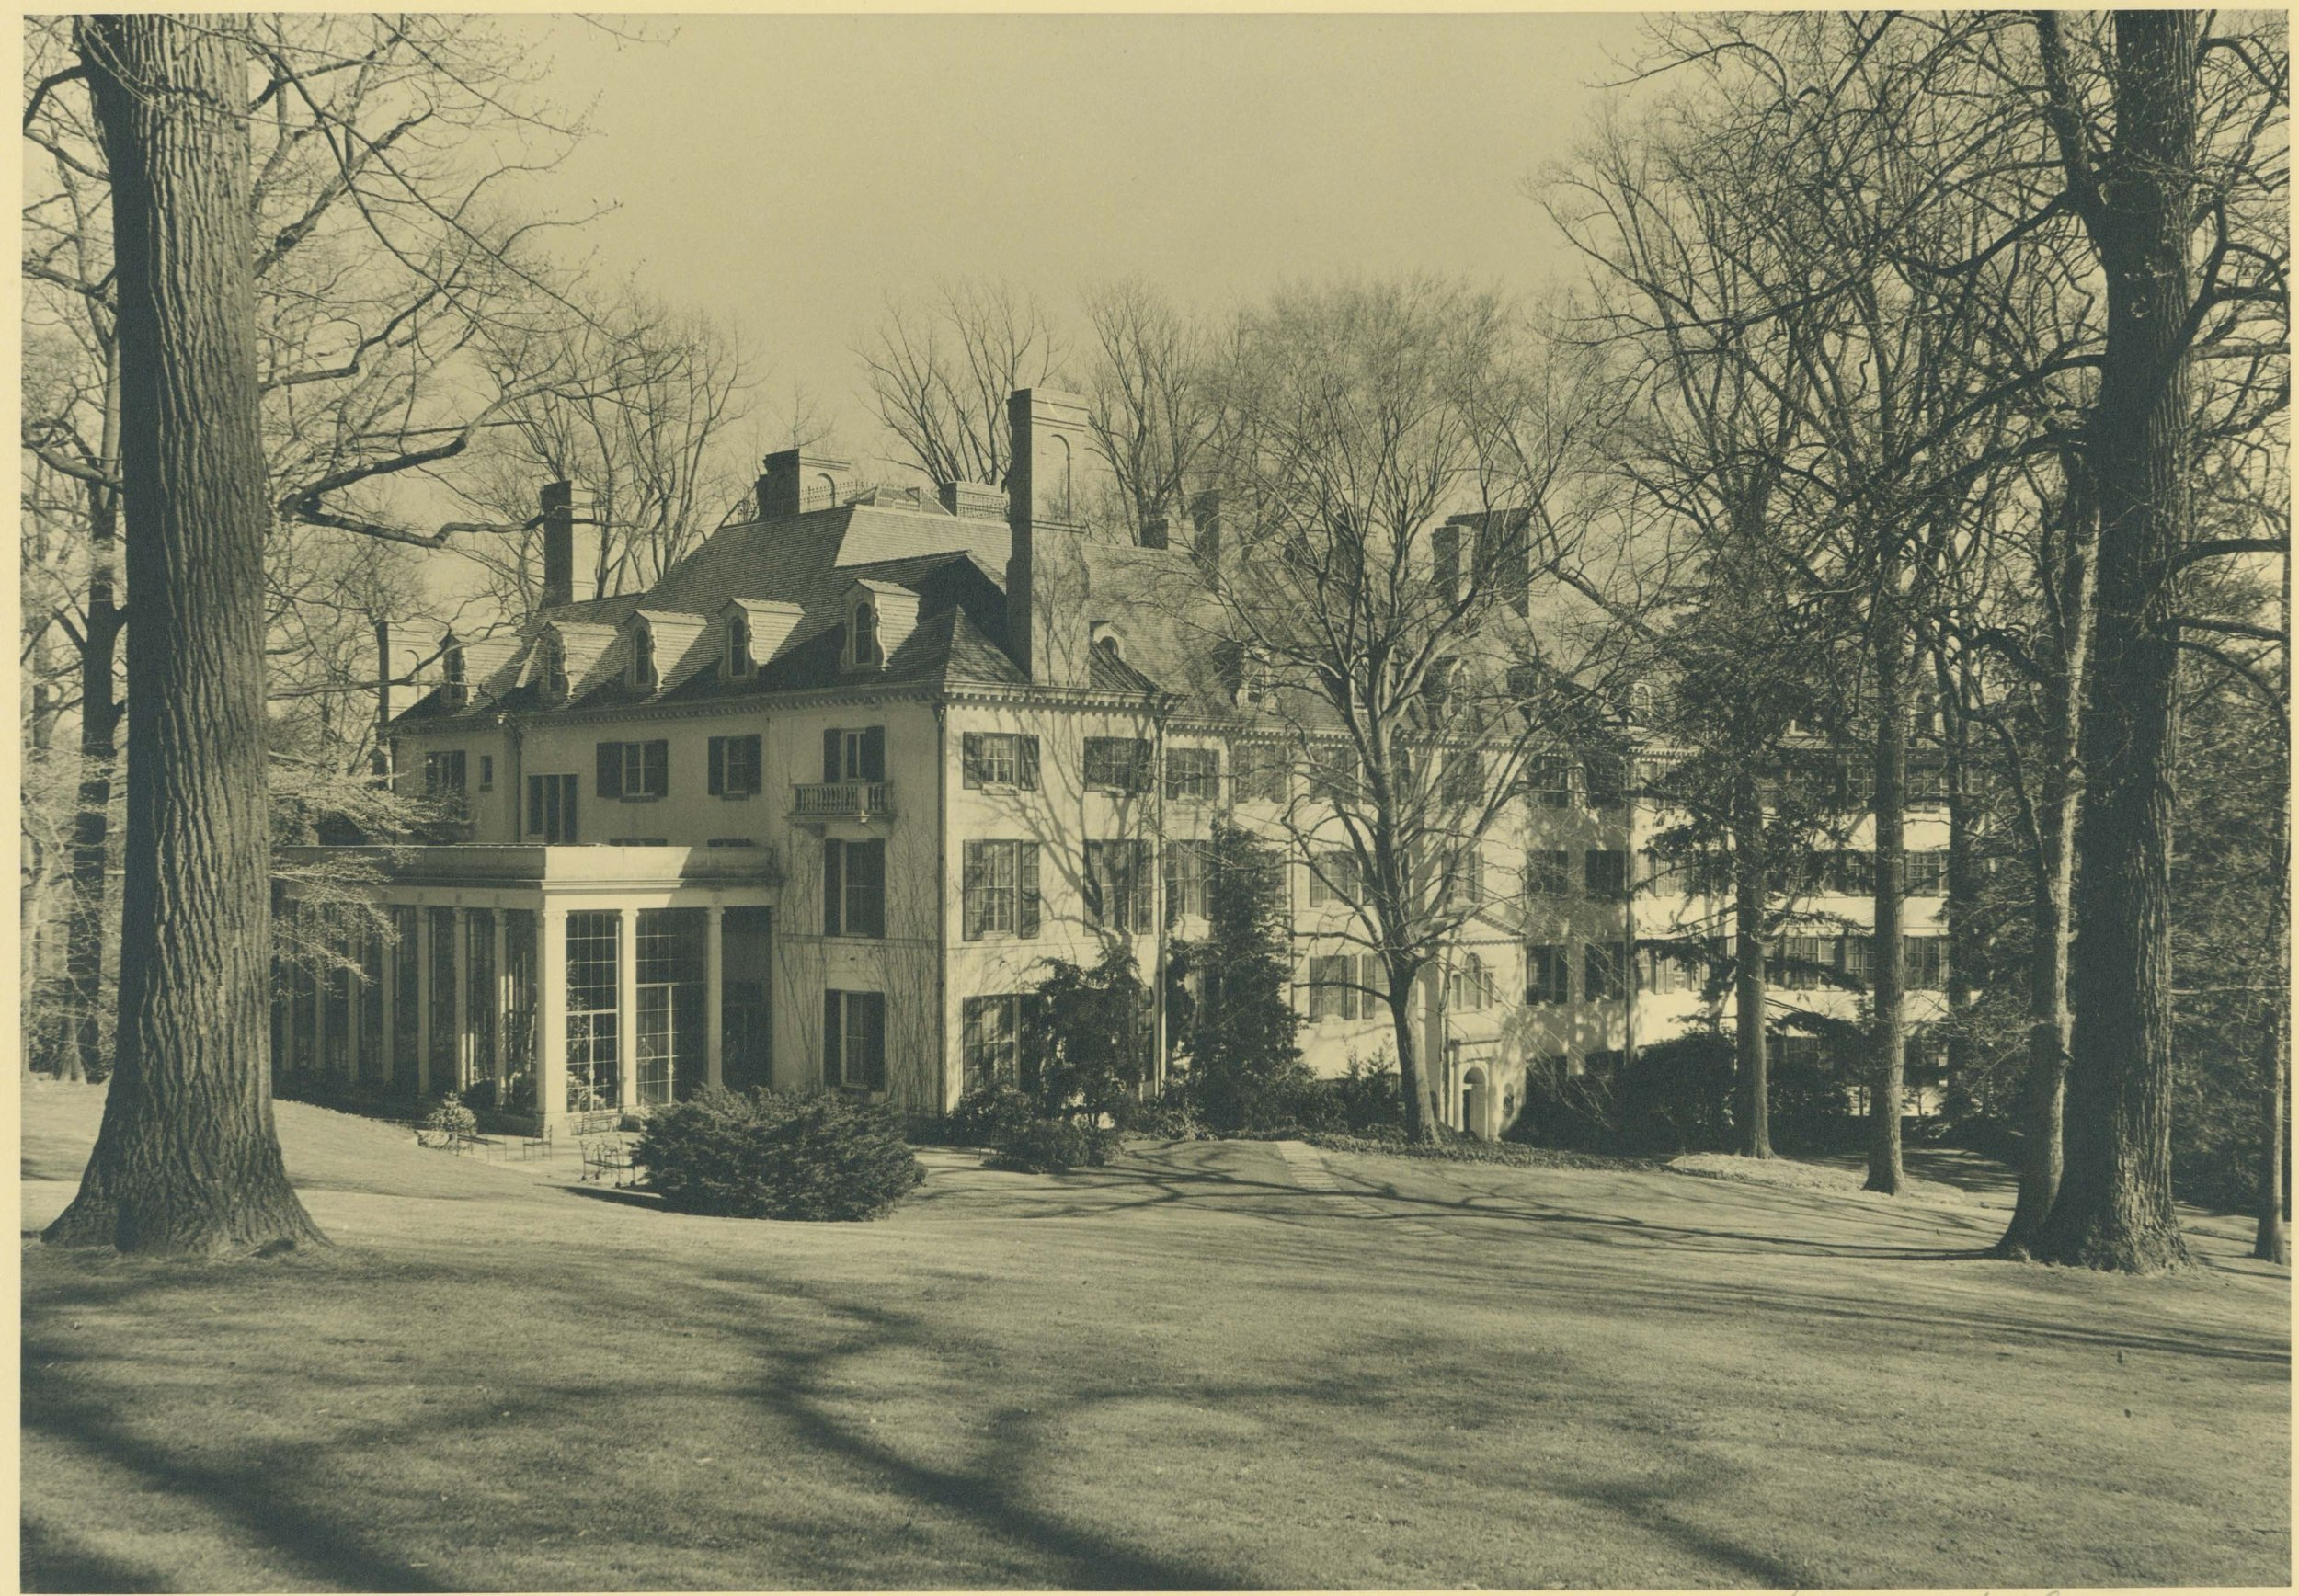 Mansion - Early 1900's